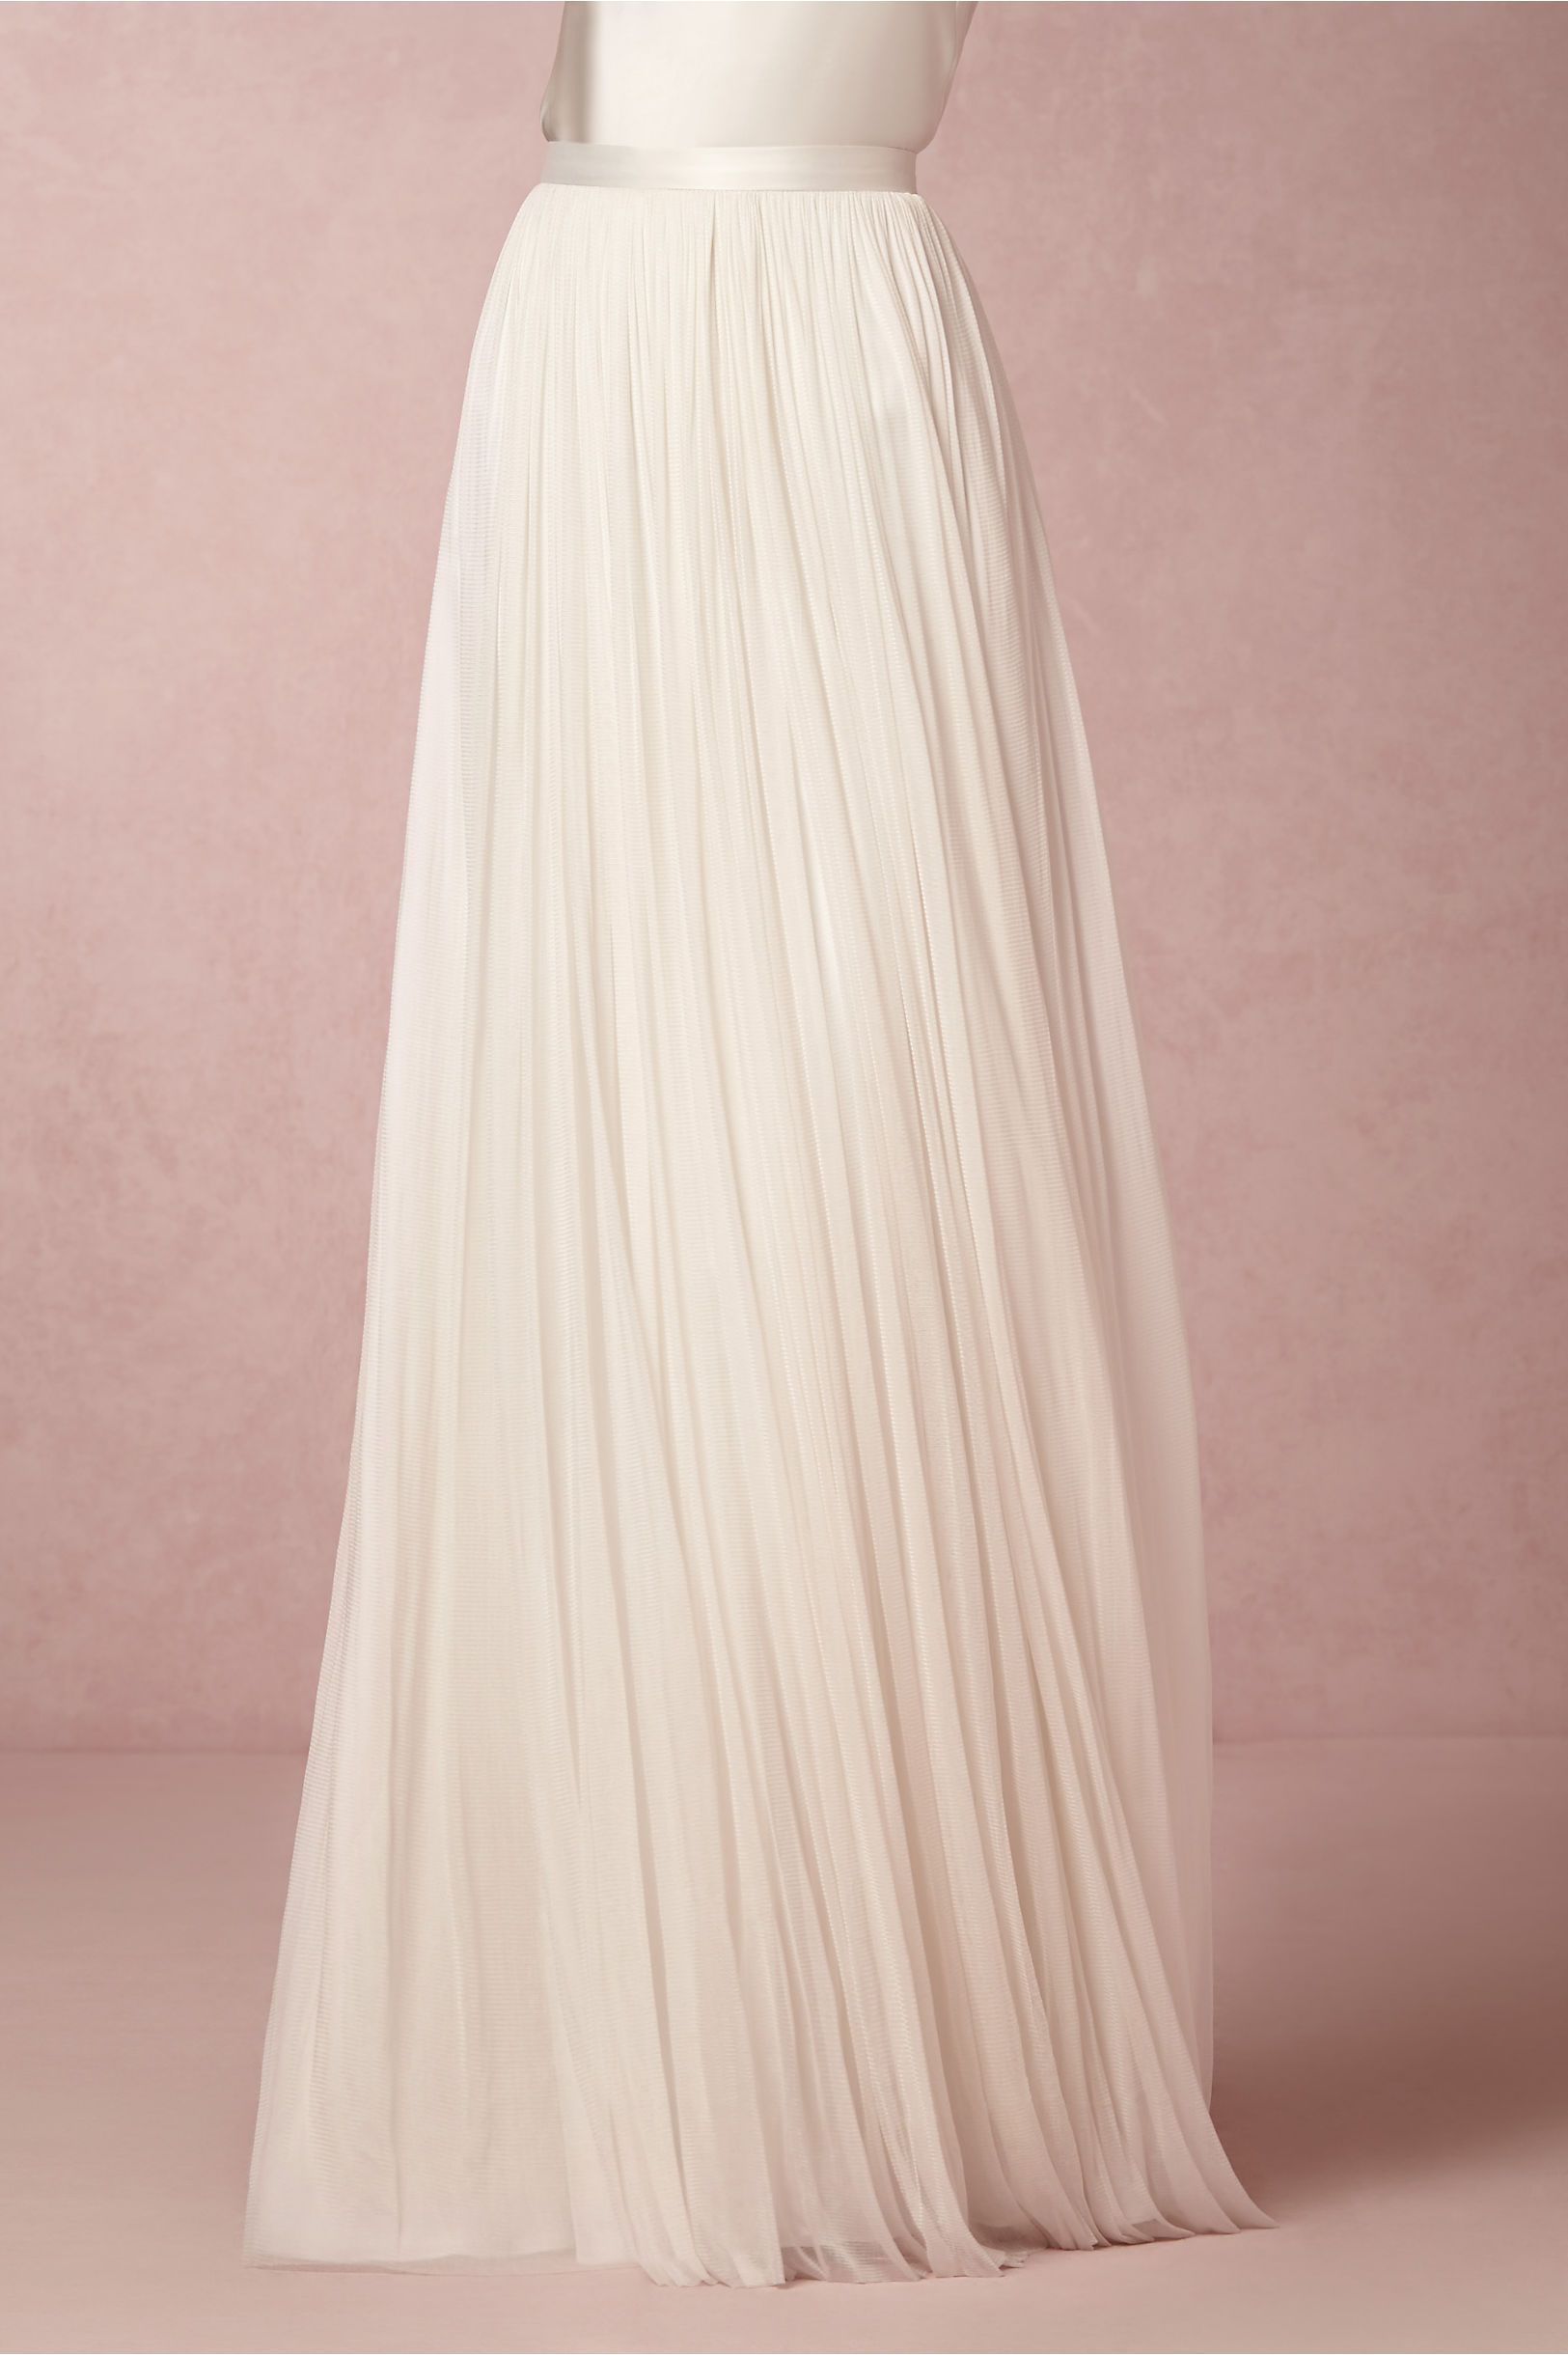 f8becd5eb Anika Tulle Skirt and In Perpetuity Camisole in Bride Wedding Dresses  A-Line at BHLDN